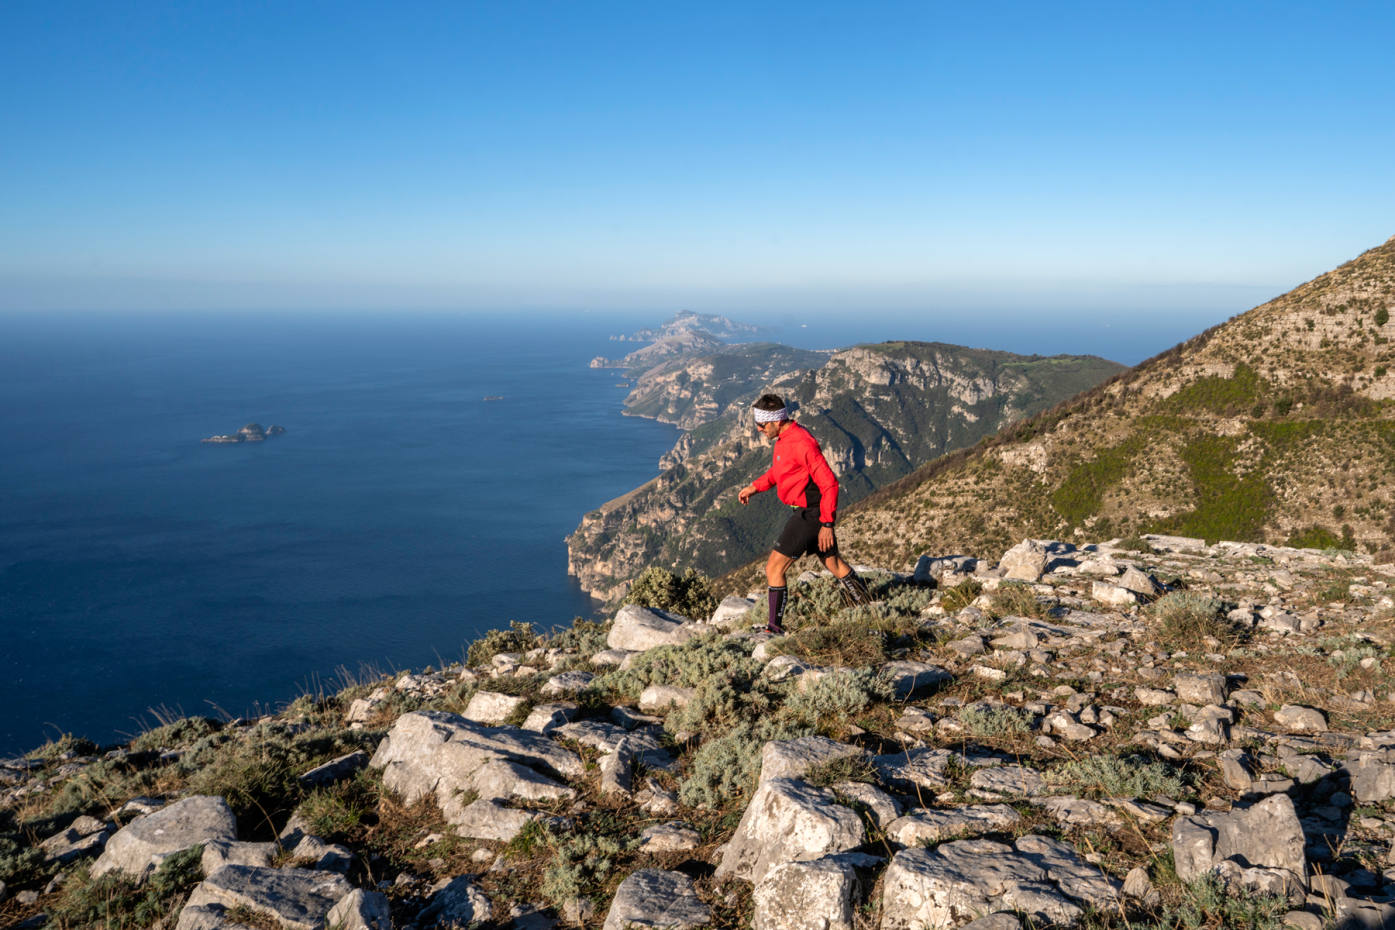 Guests who check in for the Dolce Vitality by Le Sirenuse experience will start the day with an invigorating hike across the island, passing lemon groves and churches